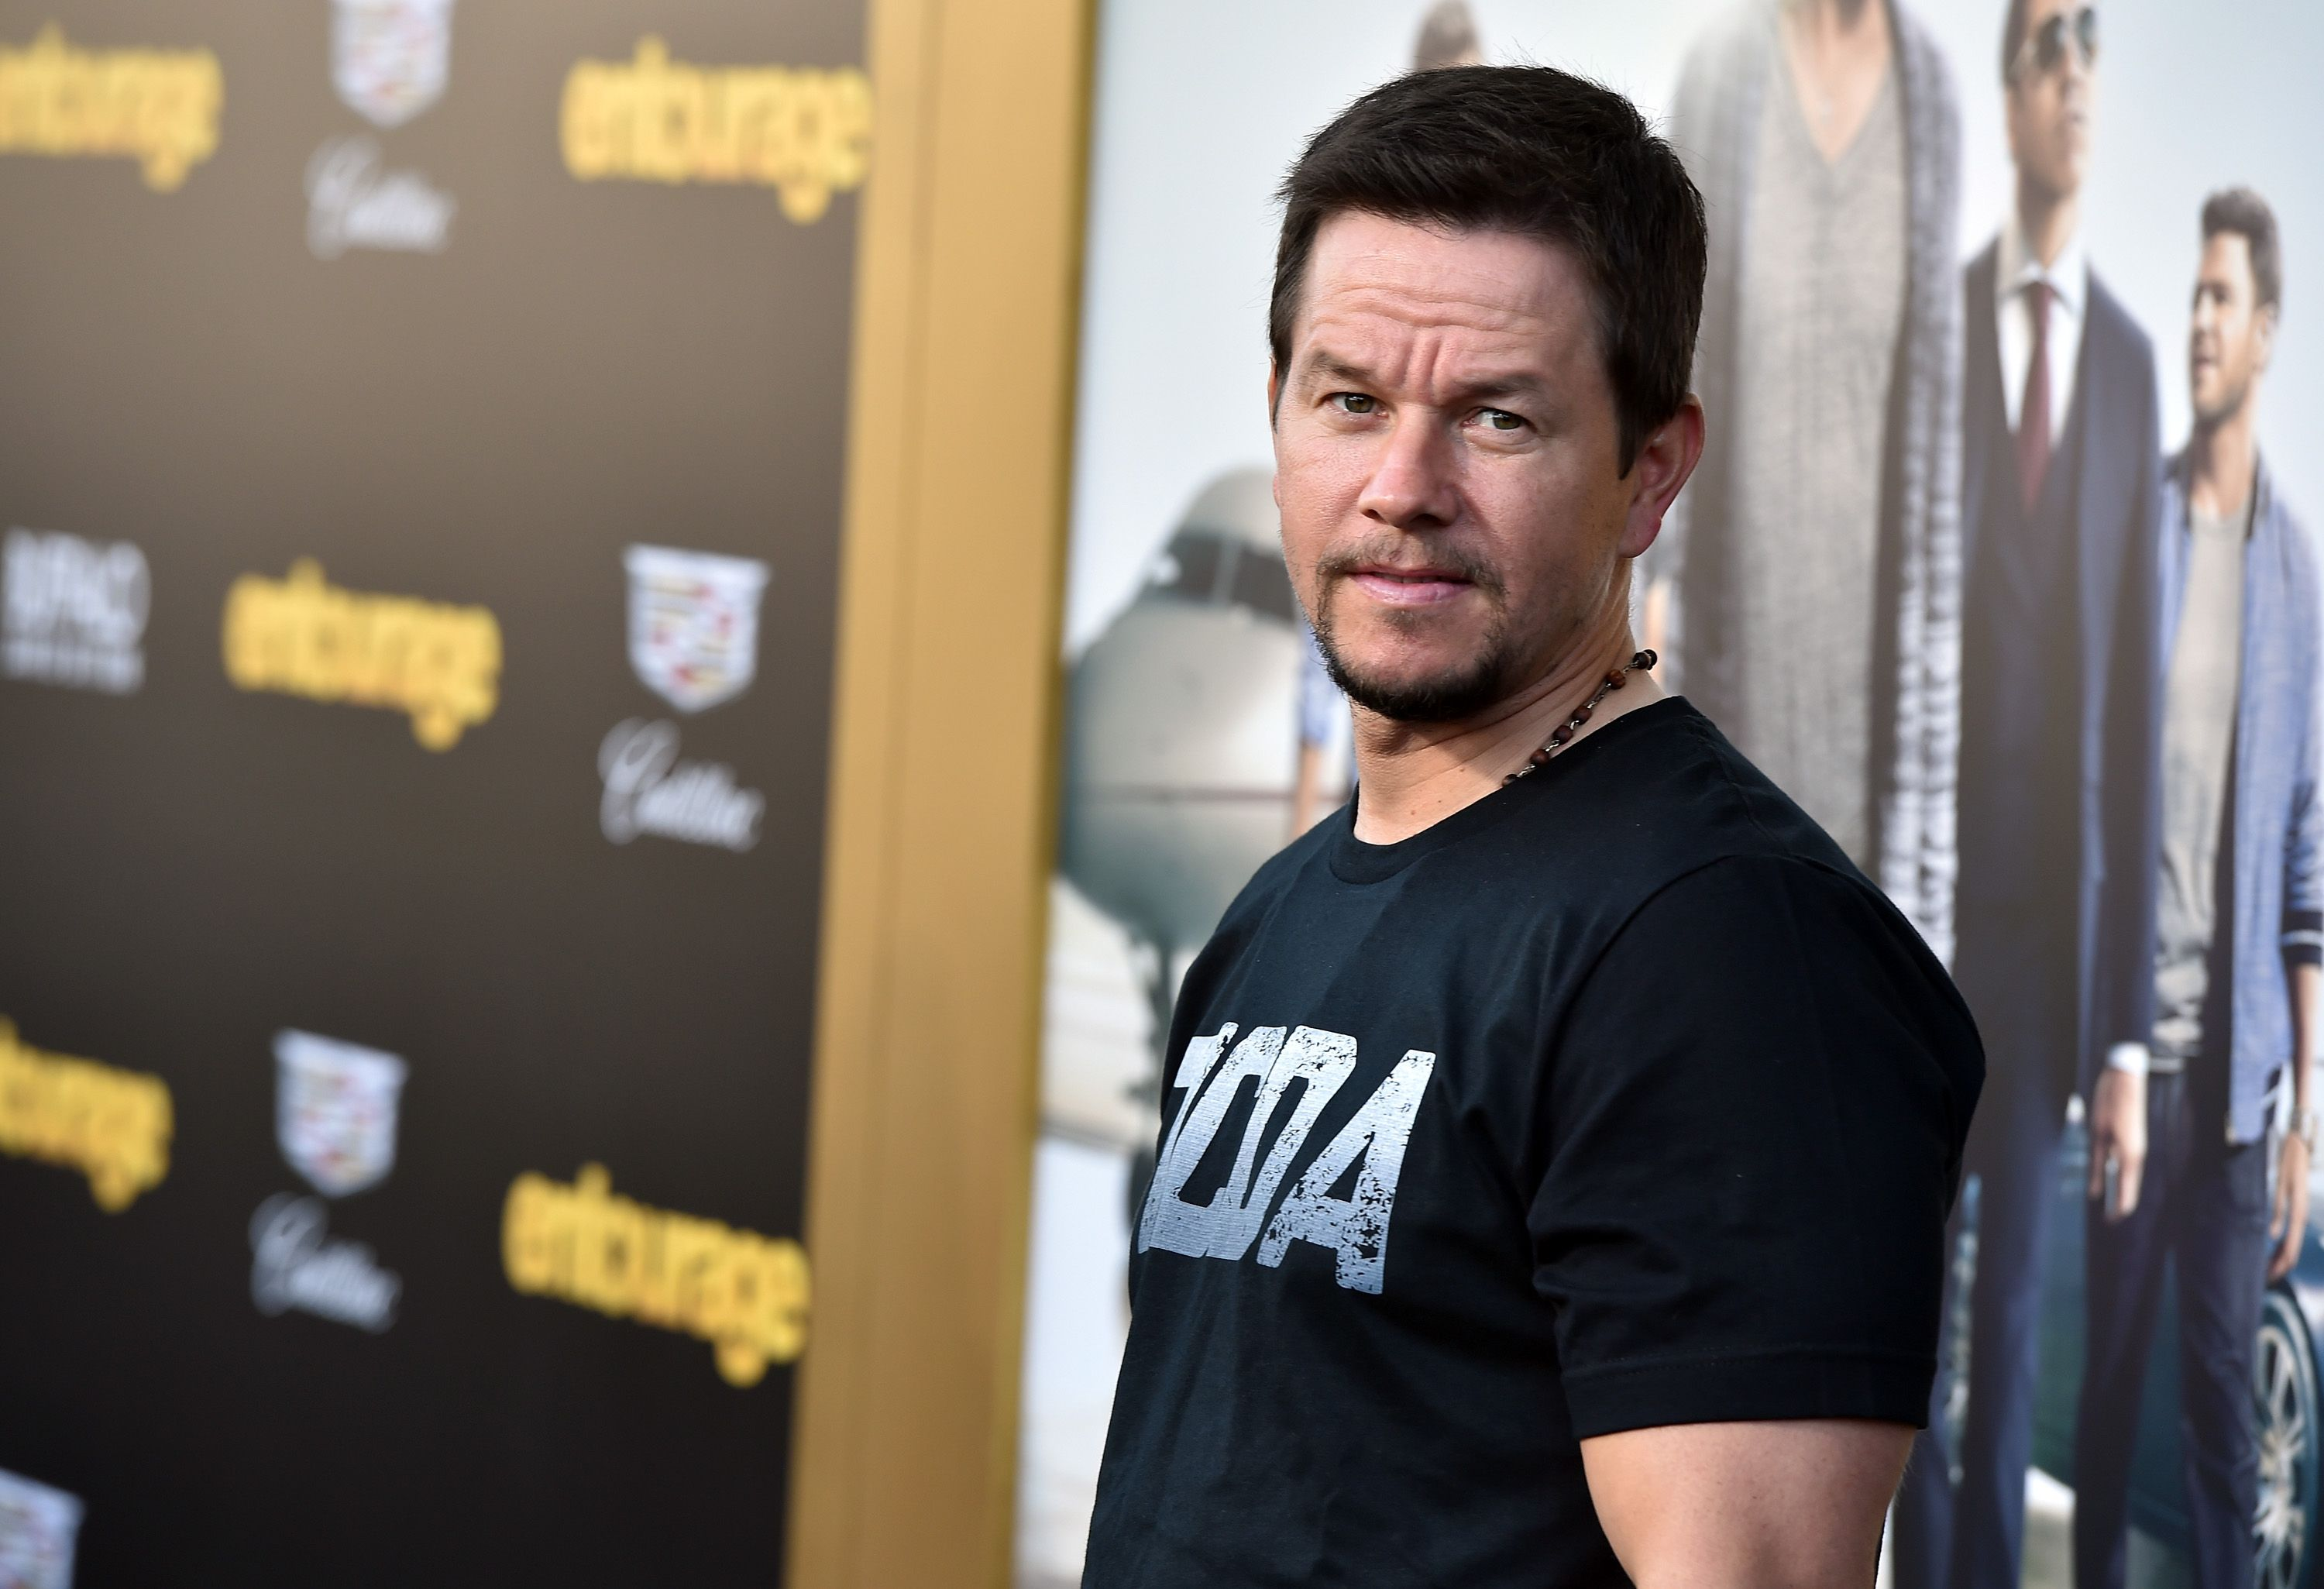 Mark Wahlberg wears a black T-shirt and beaded necklace.